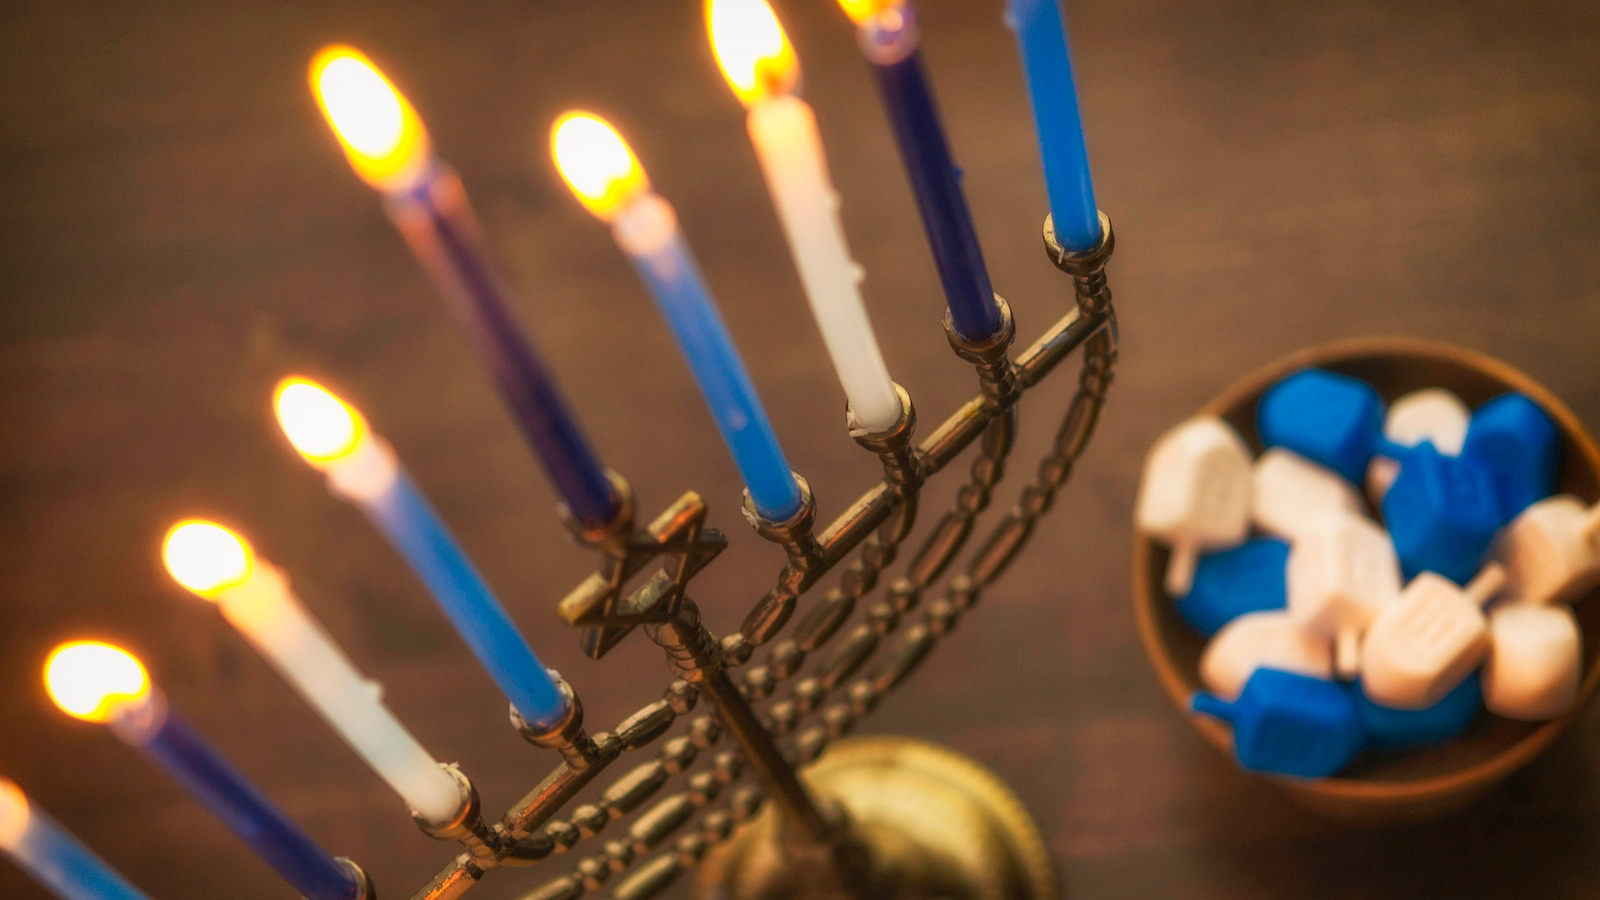 The Miracle Of Hanukkah Is That Only One Vial Oil Was Found With Just Enough To Illuminate Temple Lamp For Day And Yet It Lasted Eight